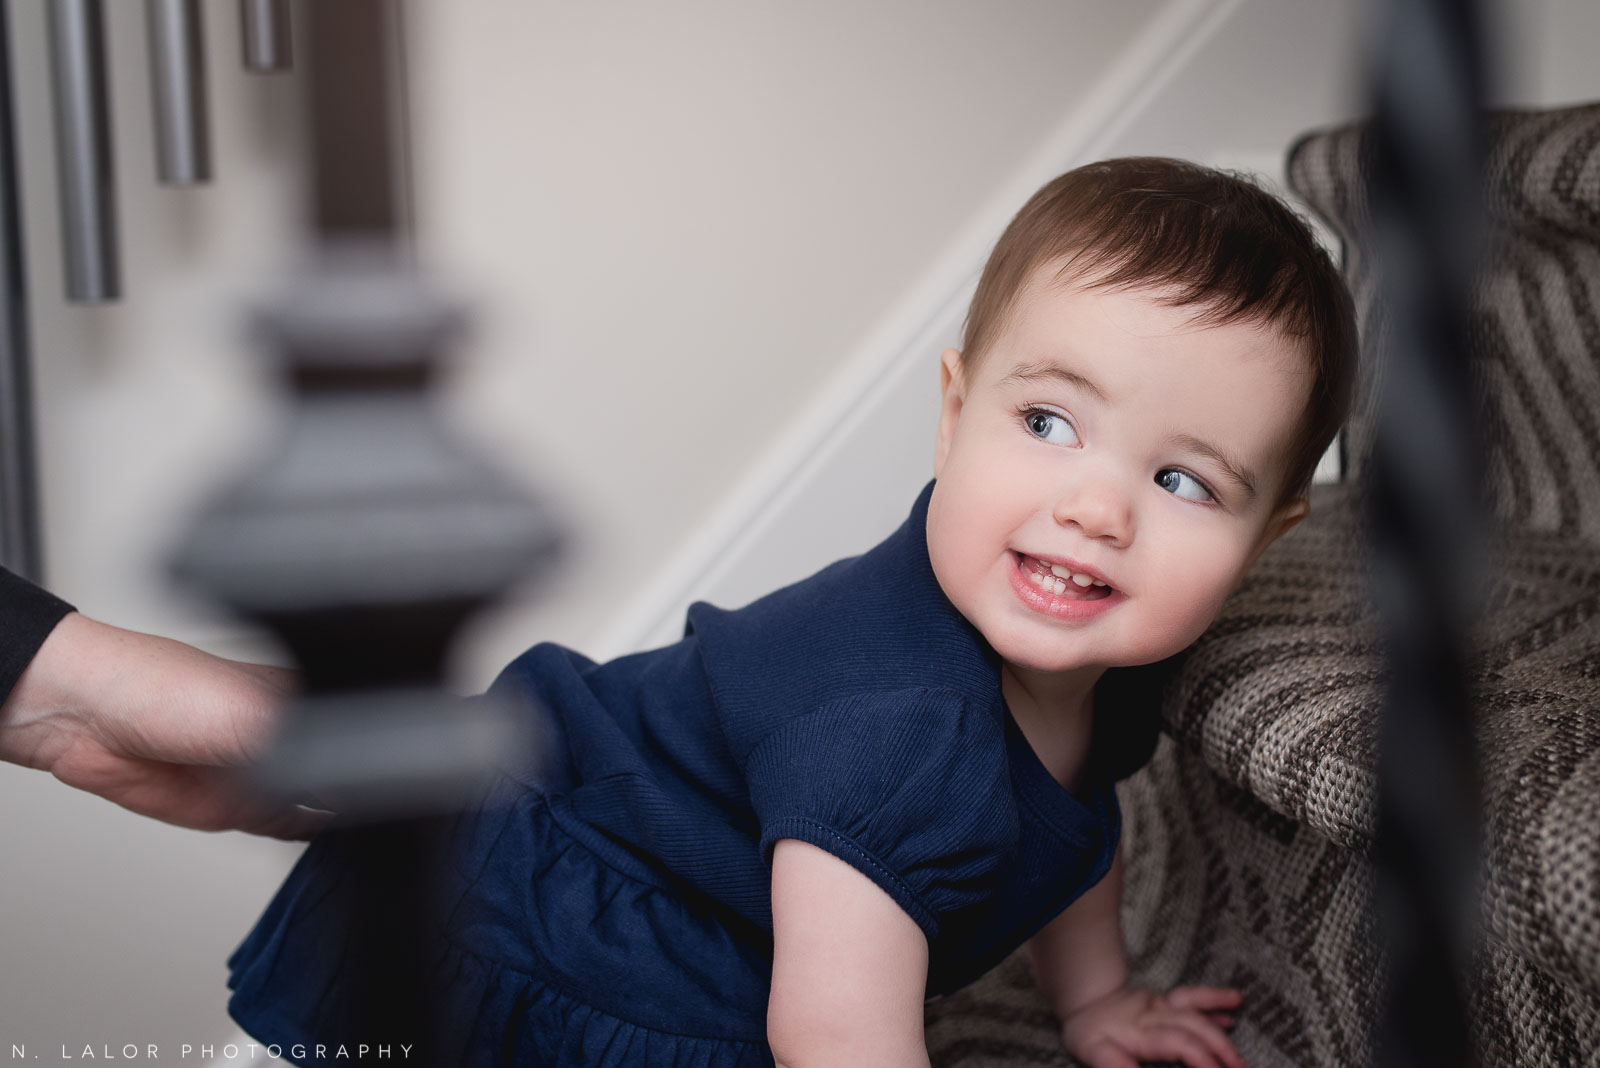 Eager 1-year old climbing the stairs. Lifestyle family session by .N. Lalor Photography